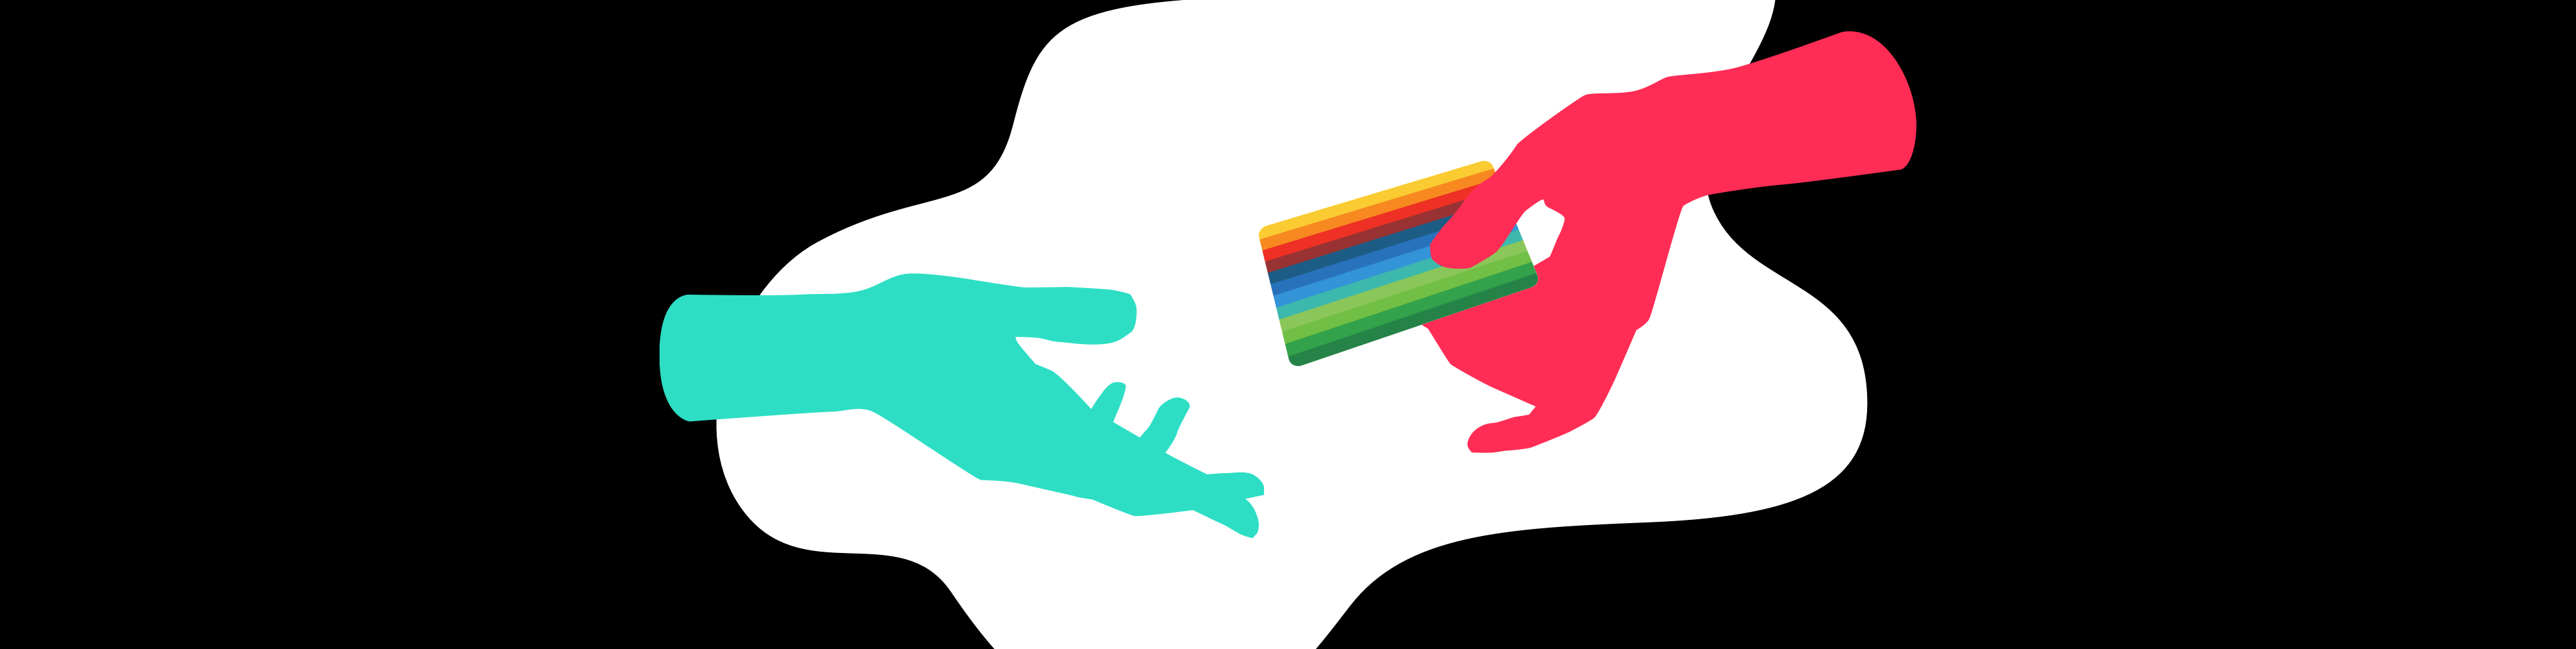 Illustrated hand giving a card to another